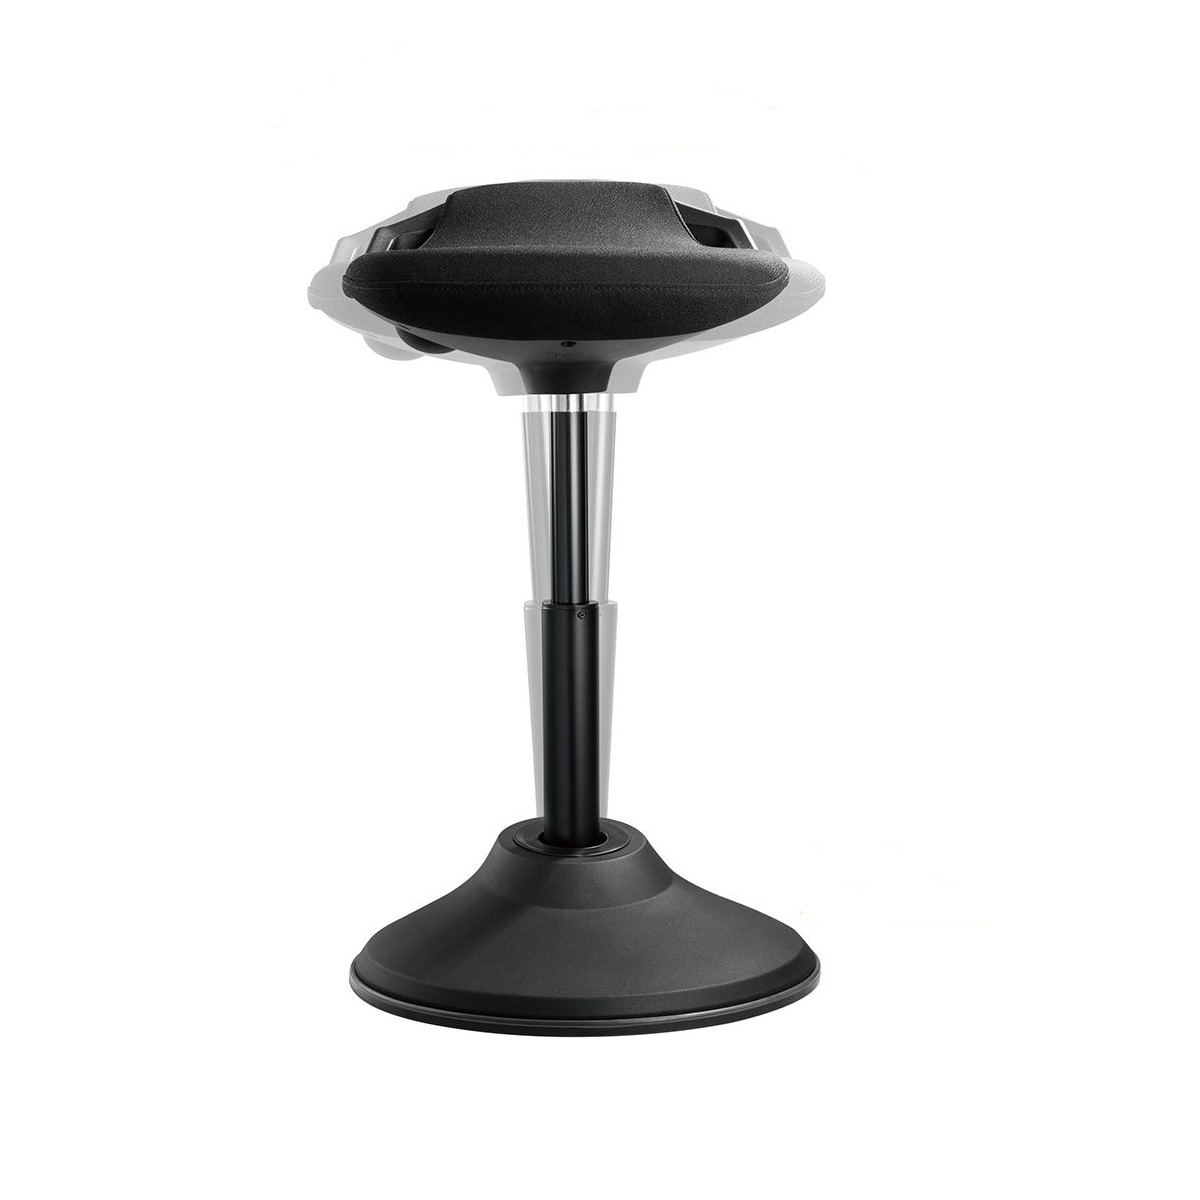 WPS-45 Wobble Perch Stool with Active Return